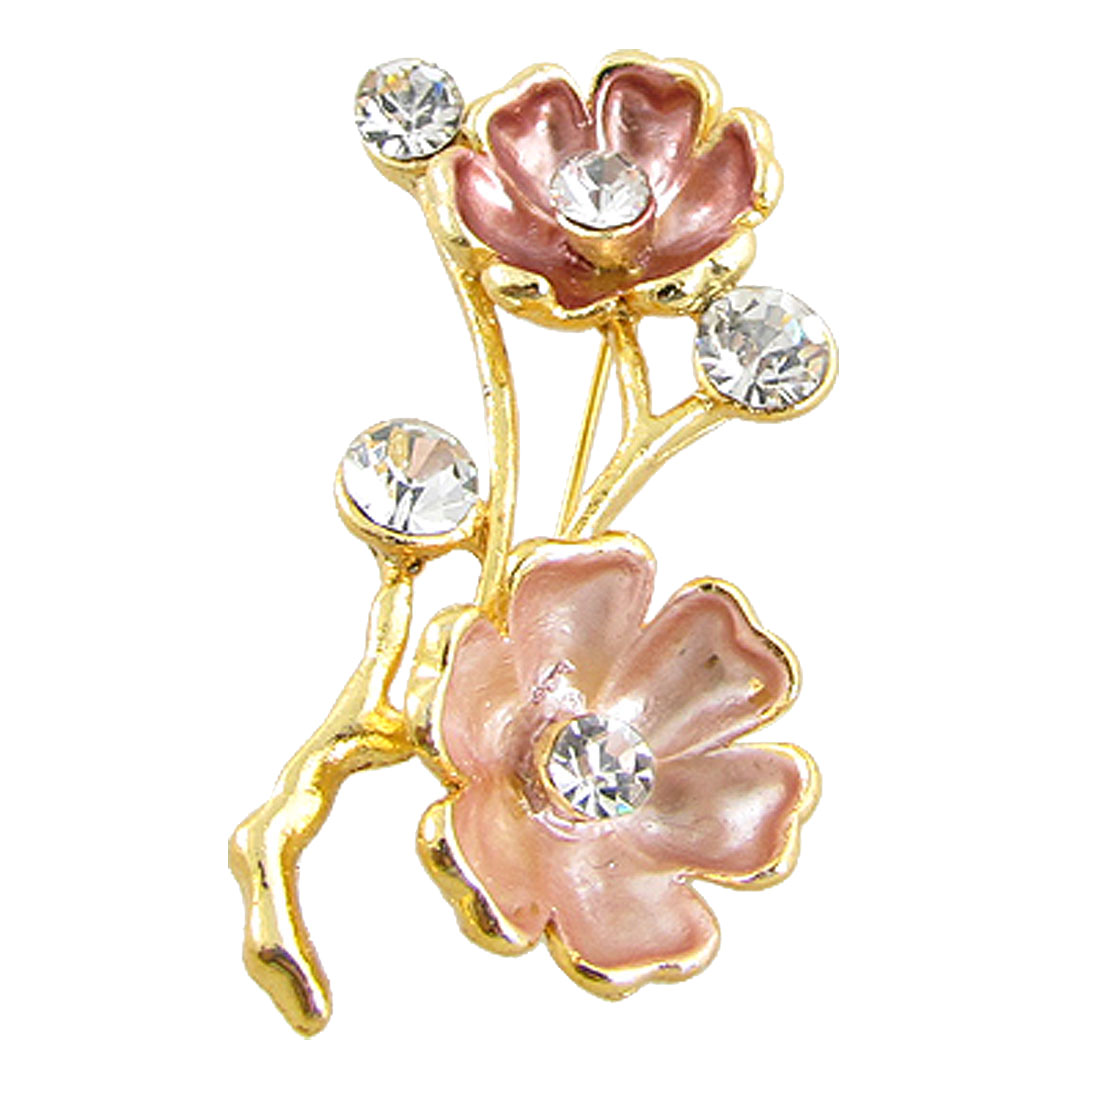 Lady Gold Tone Metal Plum Blossom Shape Brooch Ornament